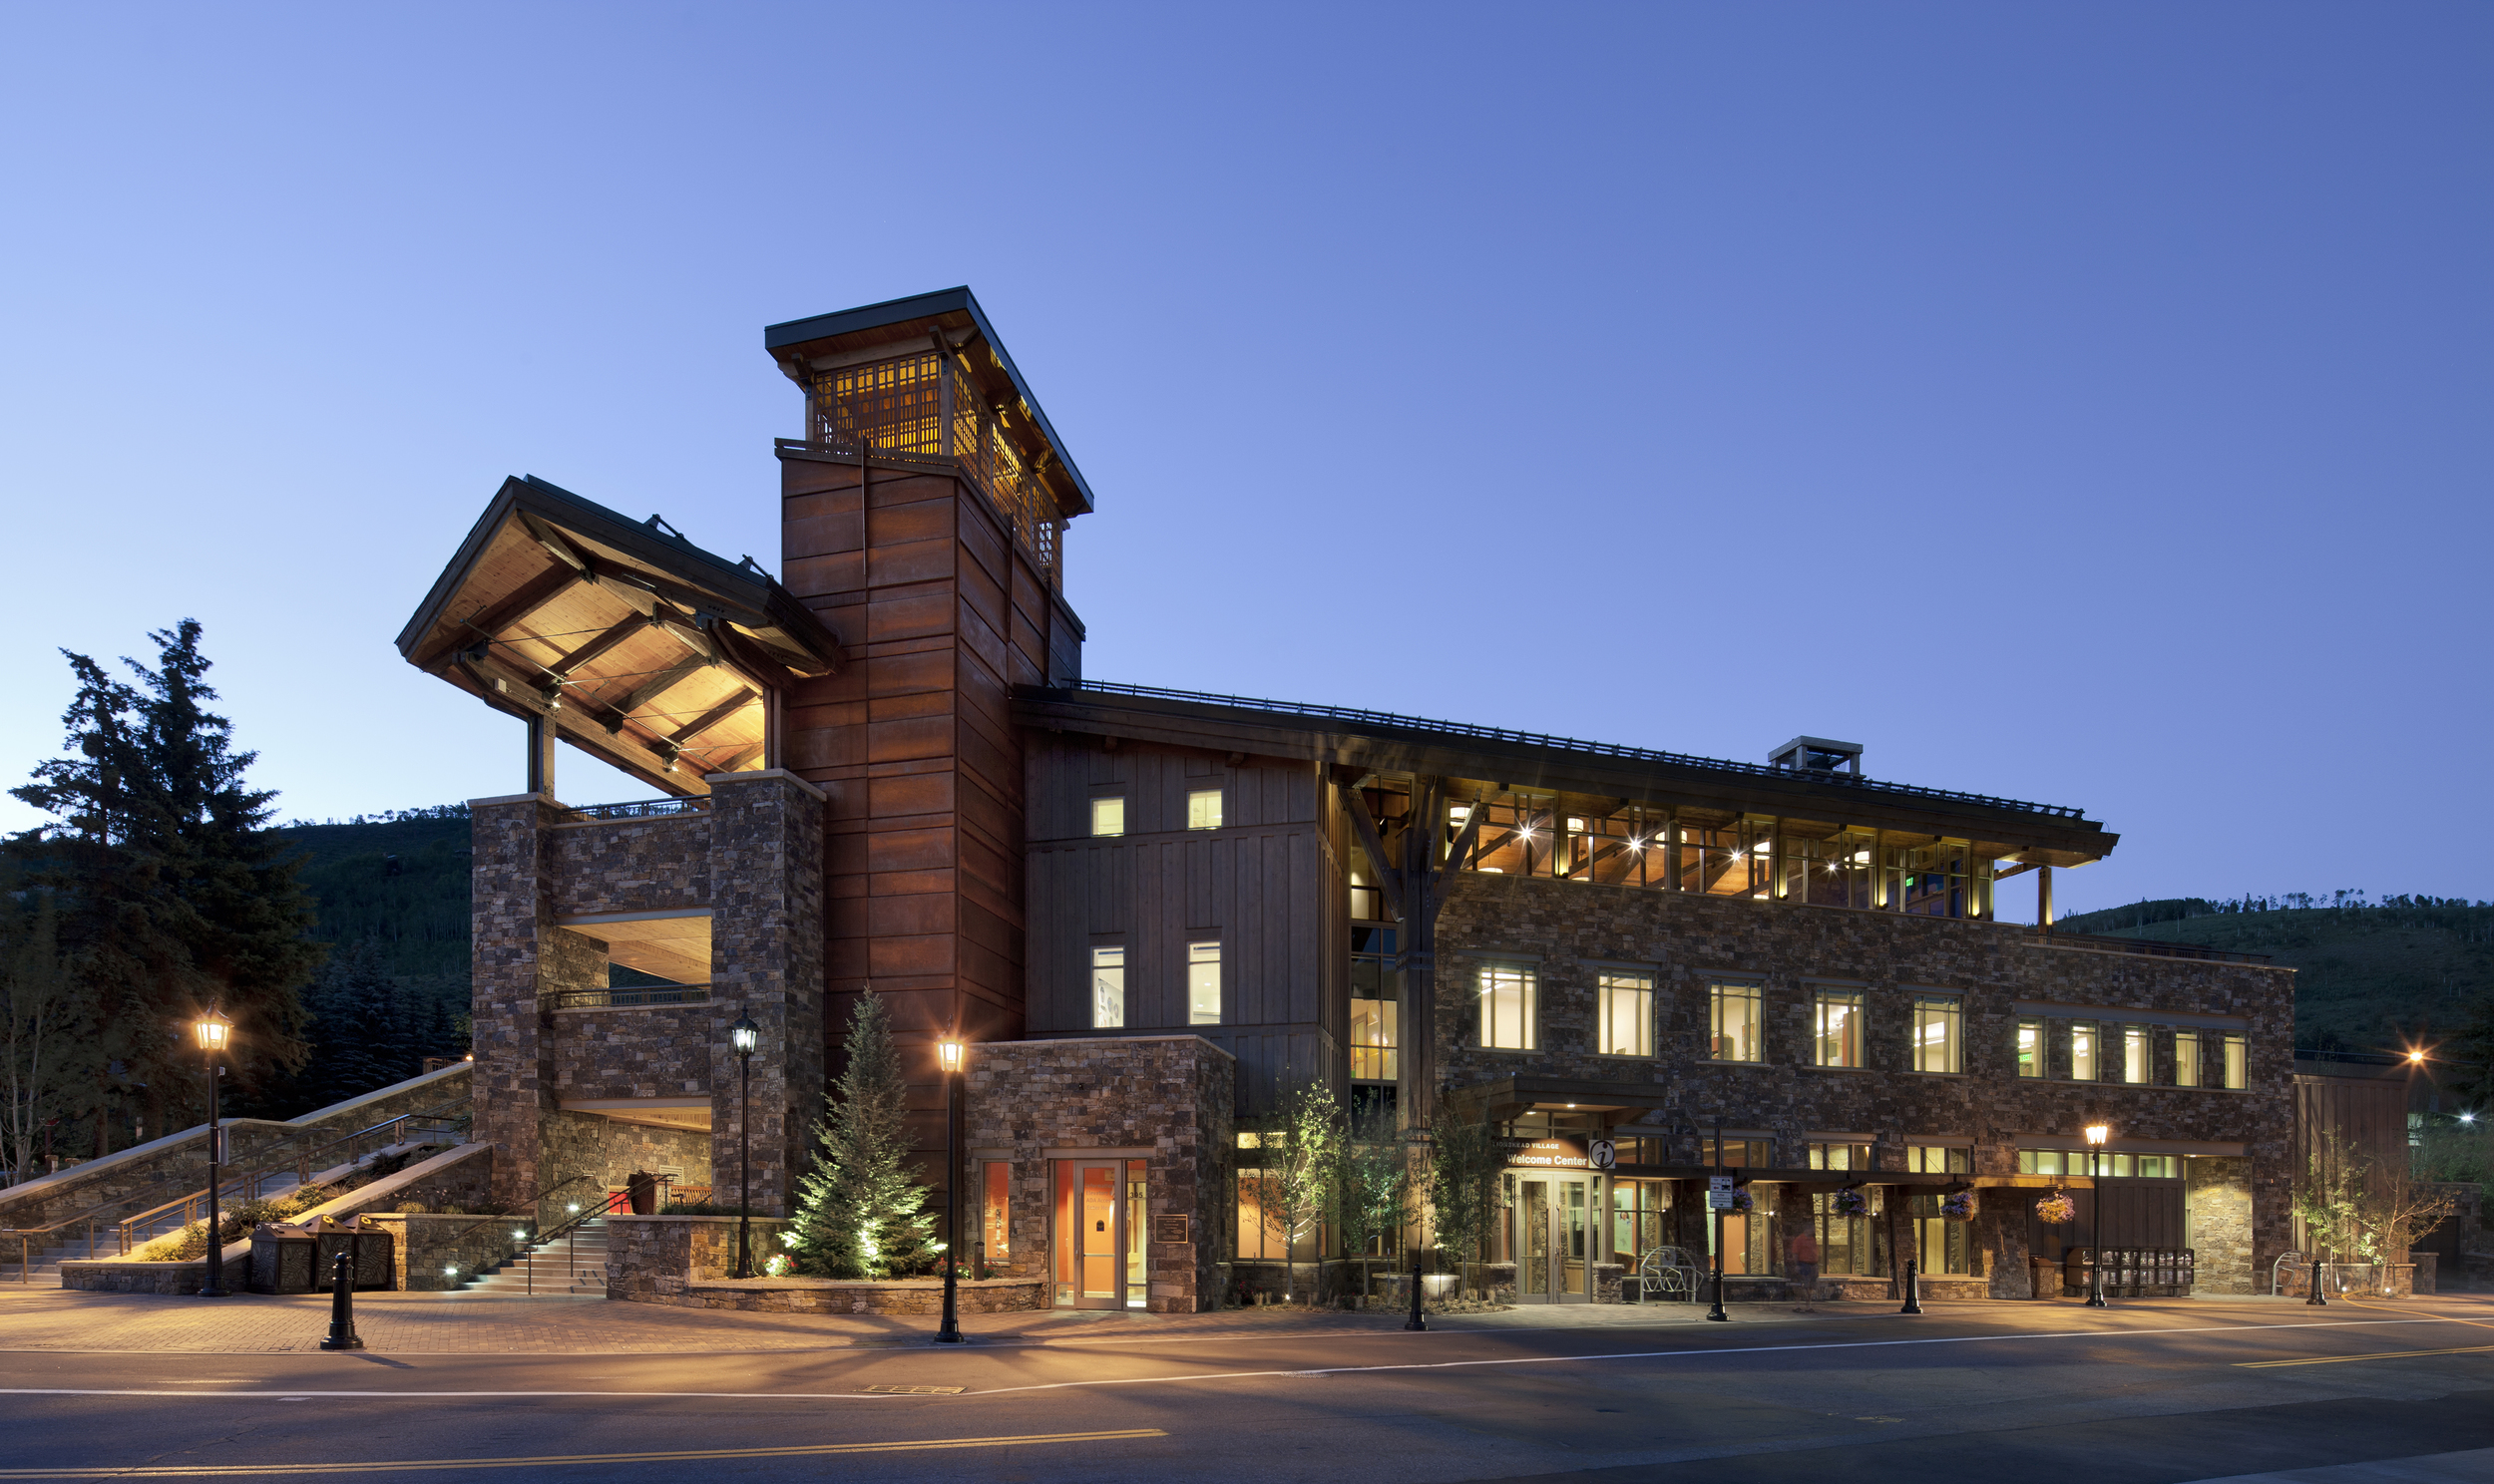 vail_lionshead_welcome_center_evening_light.jpg